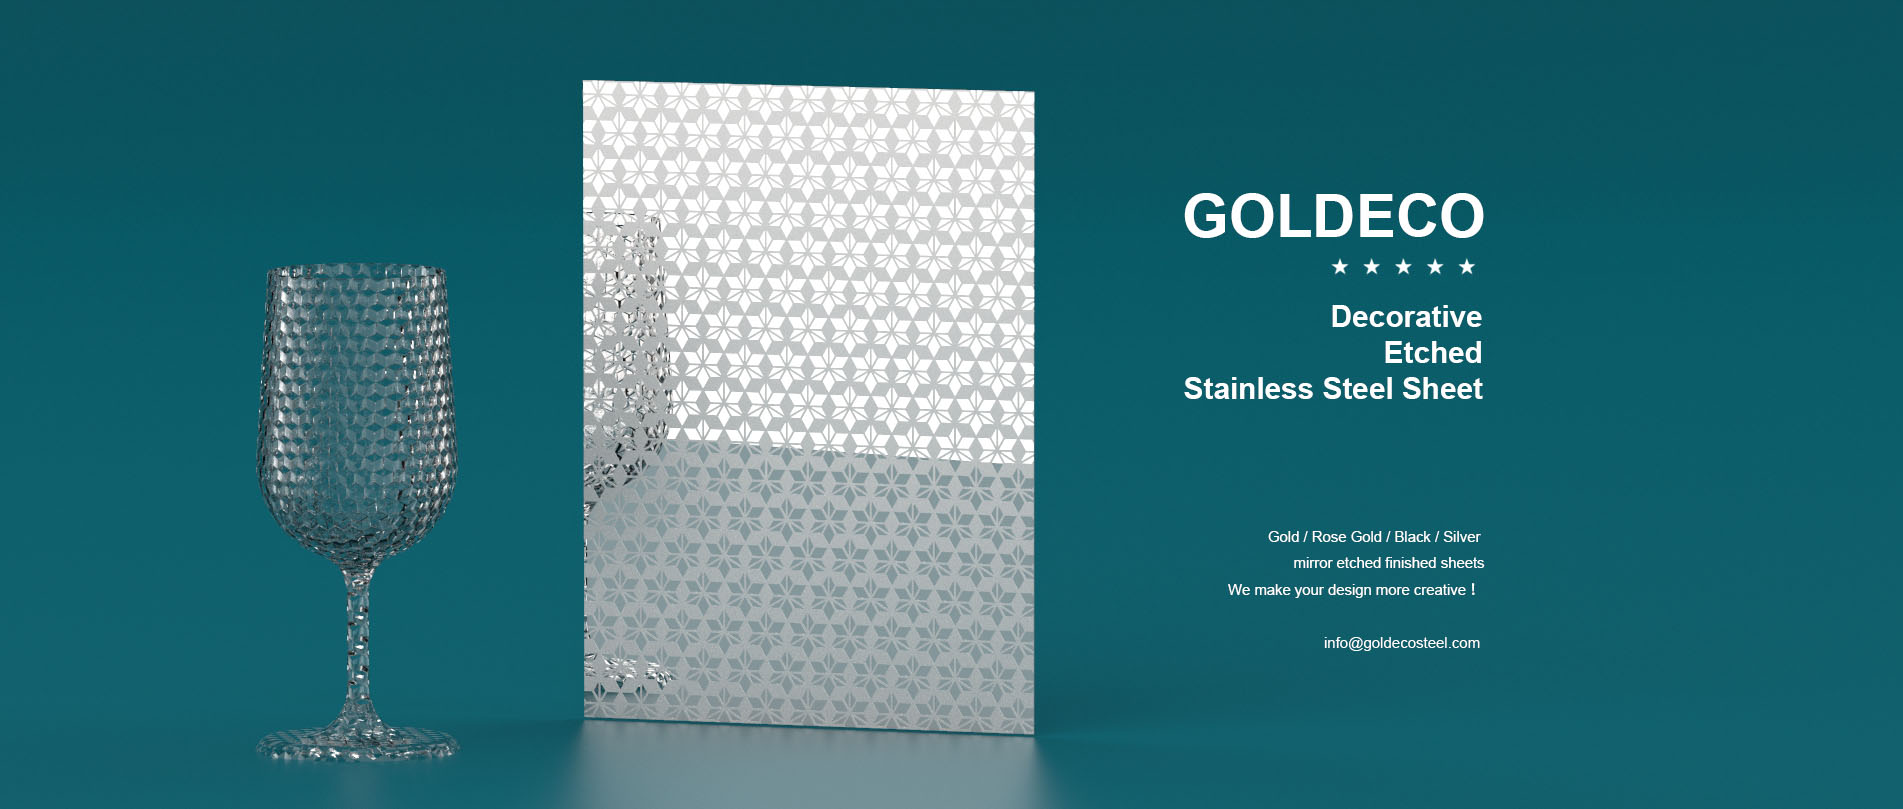 Goldeco Stainless Steel Sheet Web Banner 1-1